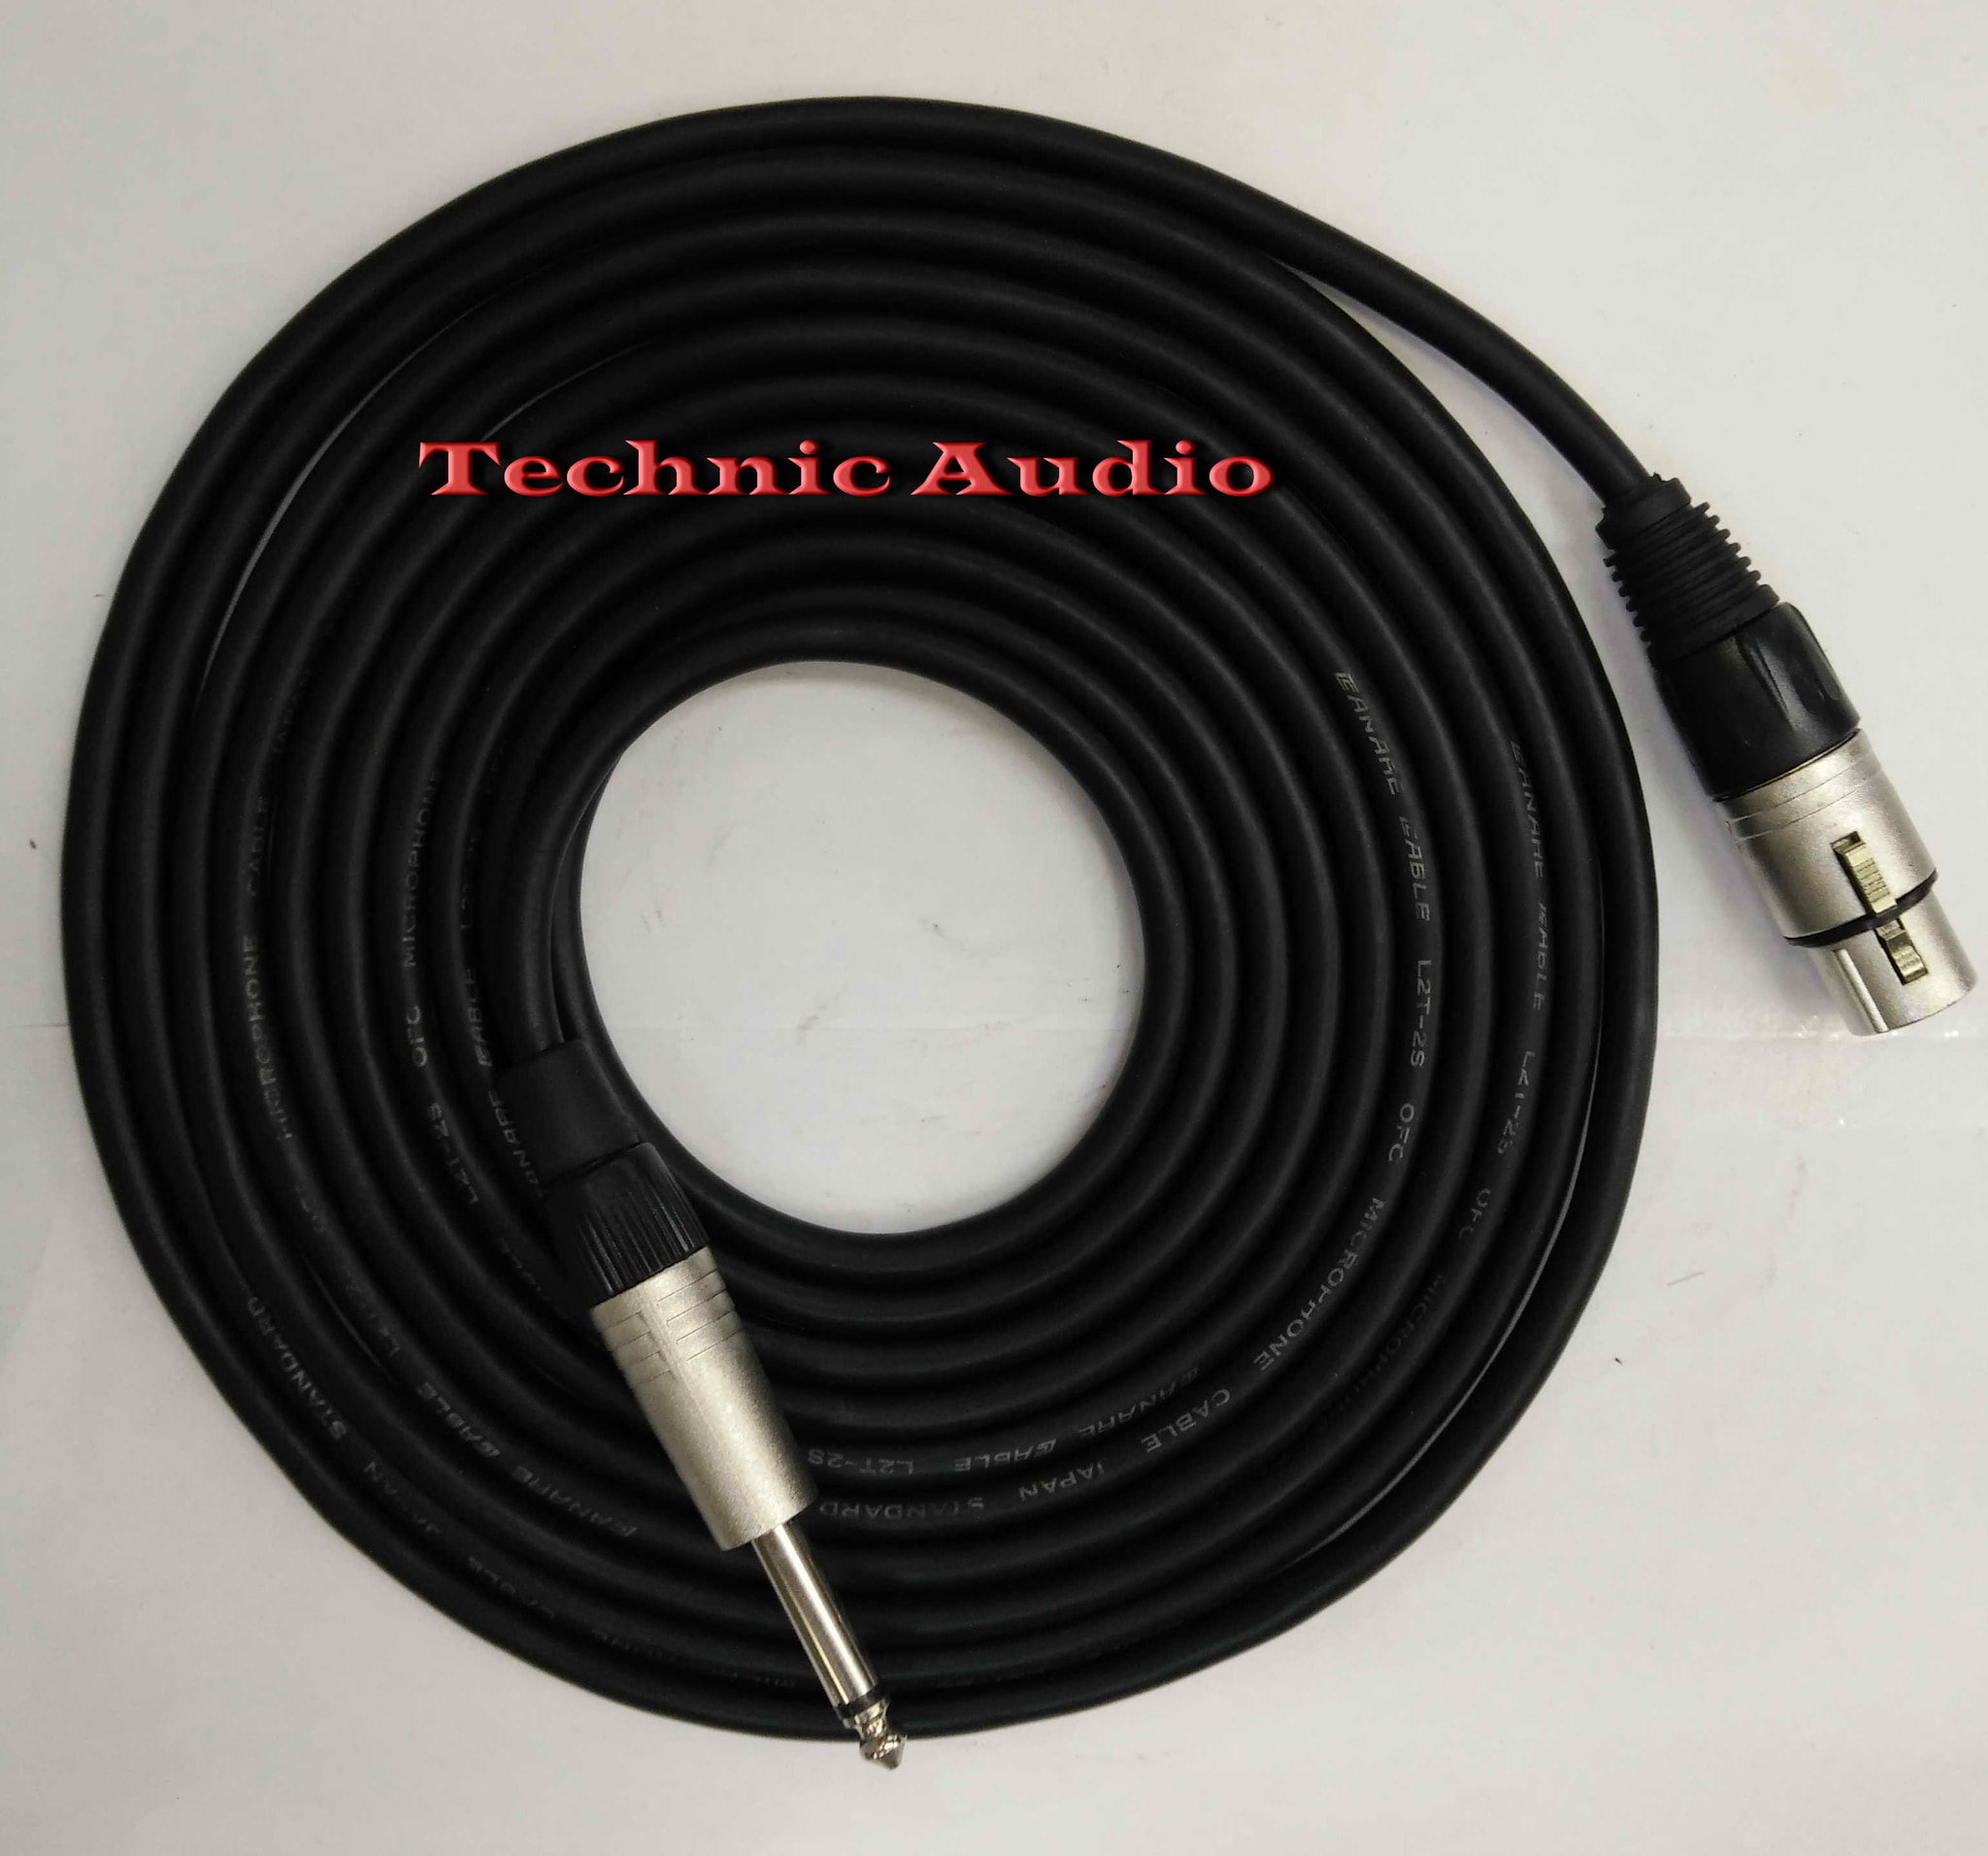 Jual Kabel Mic Microphone Cable Canare Xlr Female To Akai